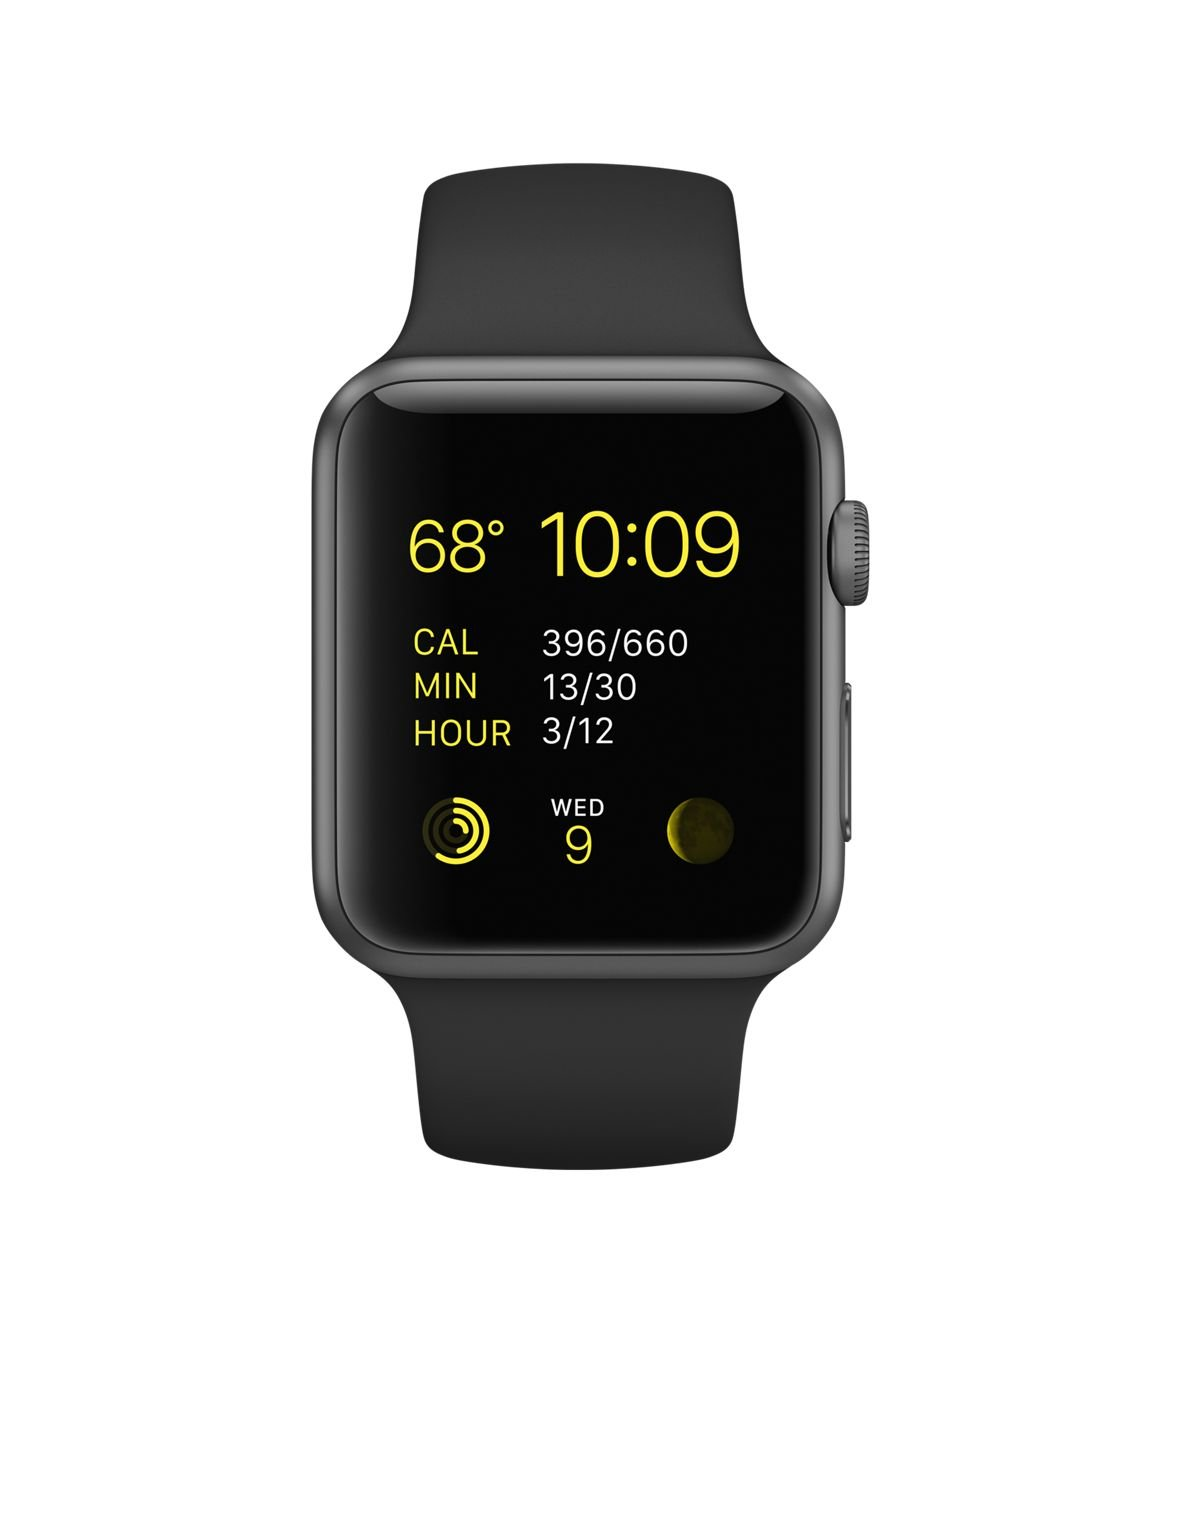 Smart Watches are good things to buy for your girlfriend